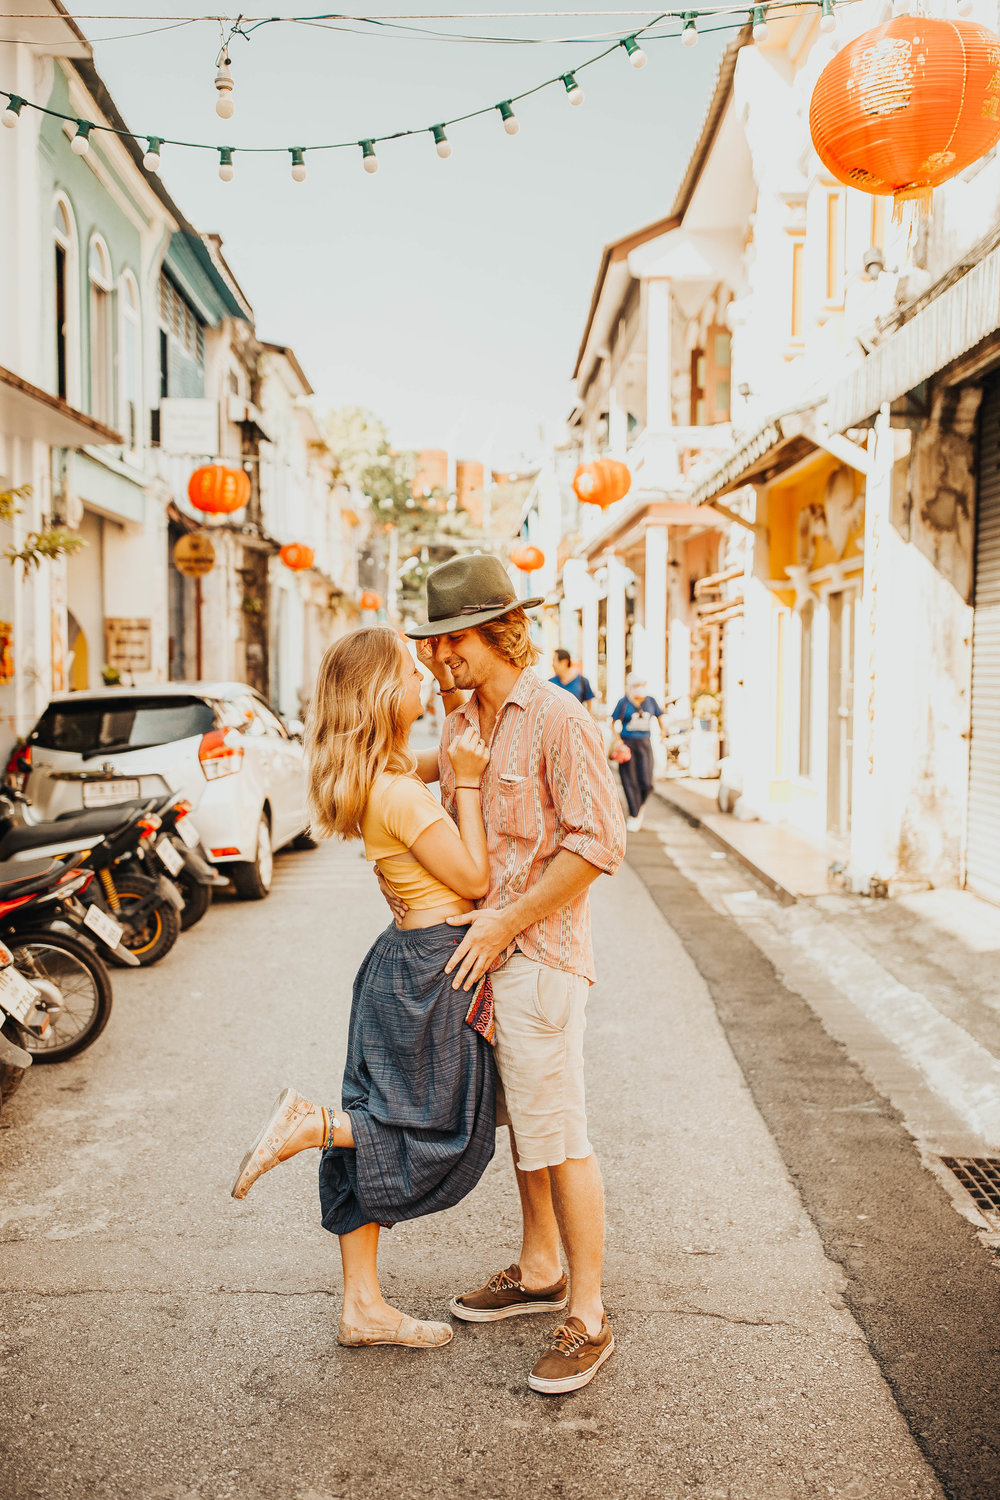 Julie and Will Old Town Phuket Couples Session 19.jpg